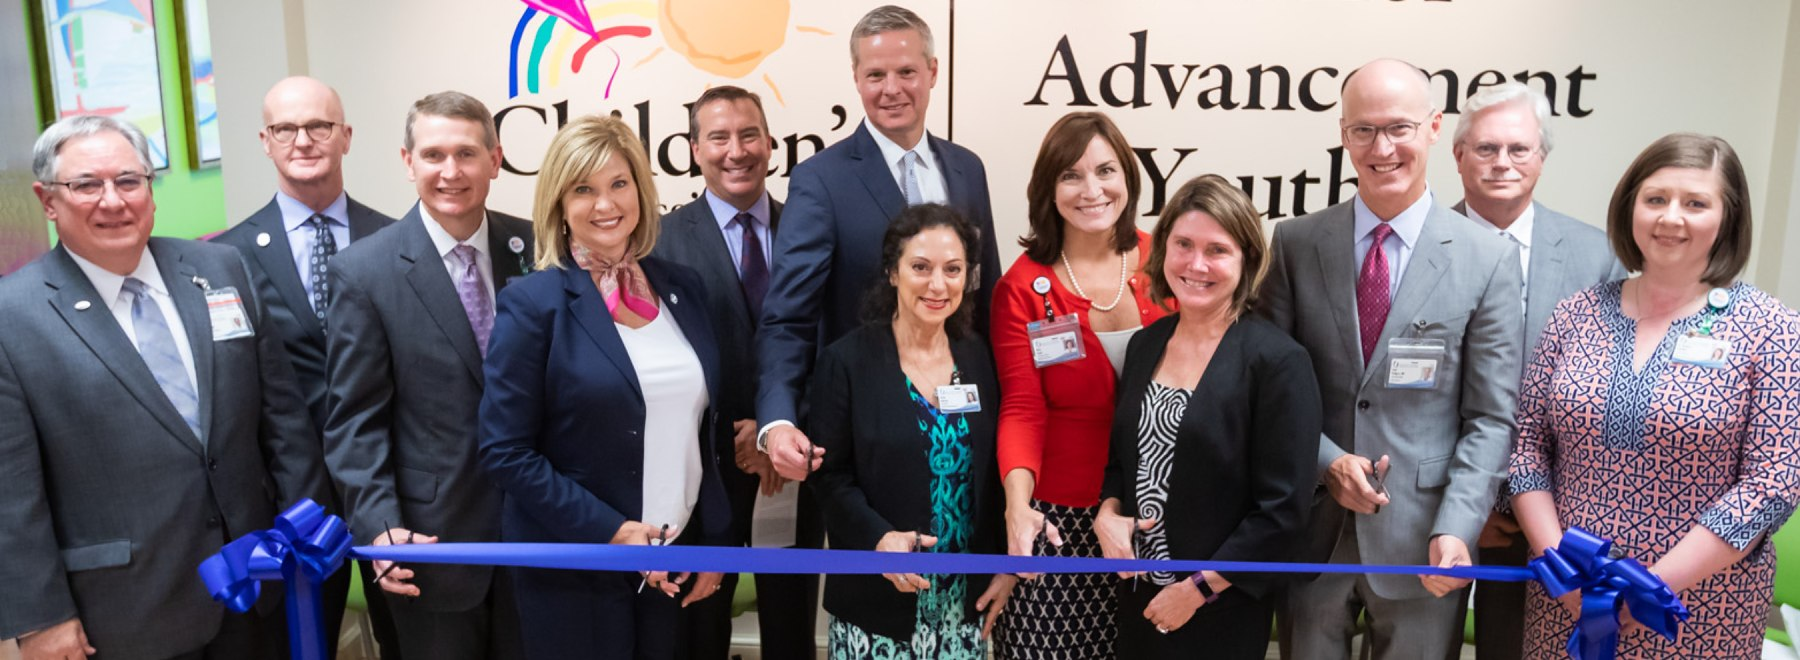 Ribbon-cutting ceremony for CAY